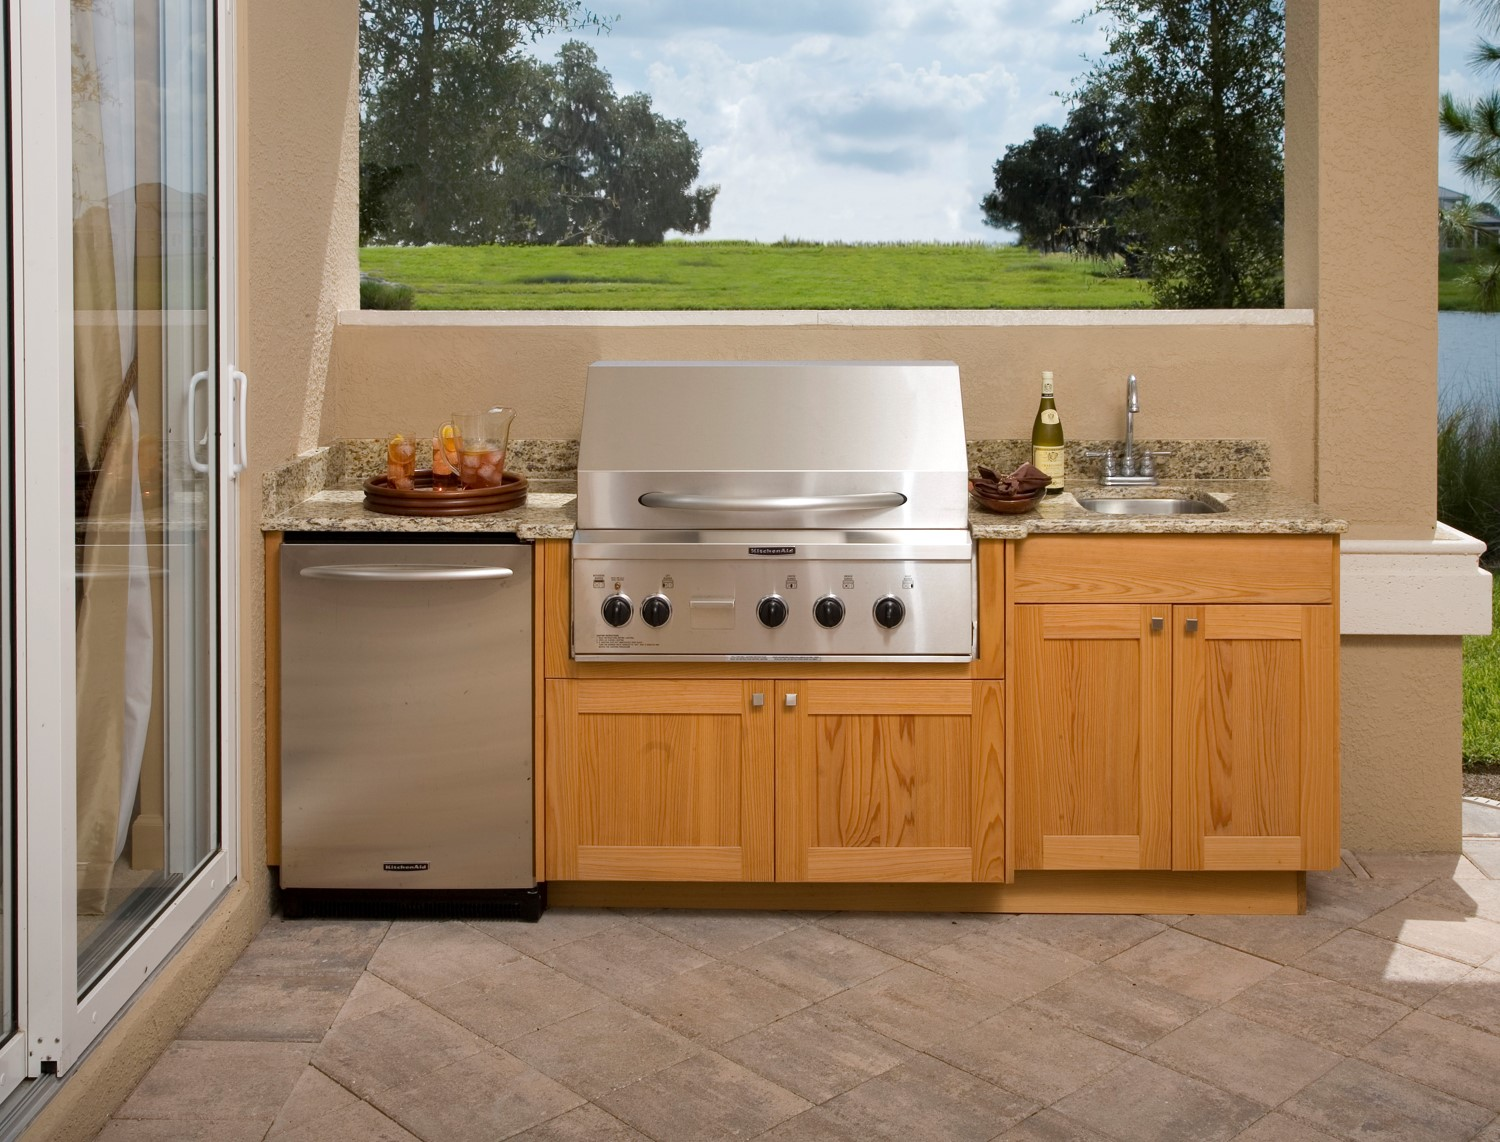 Outdoor Kitchen Cabinets The Stone Studio Inc